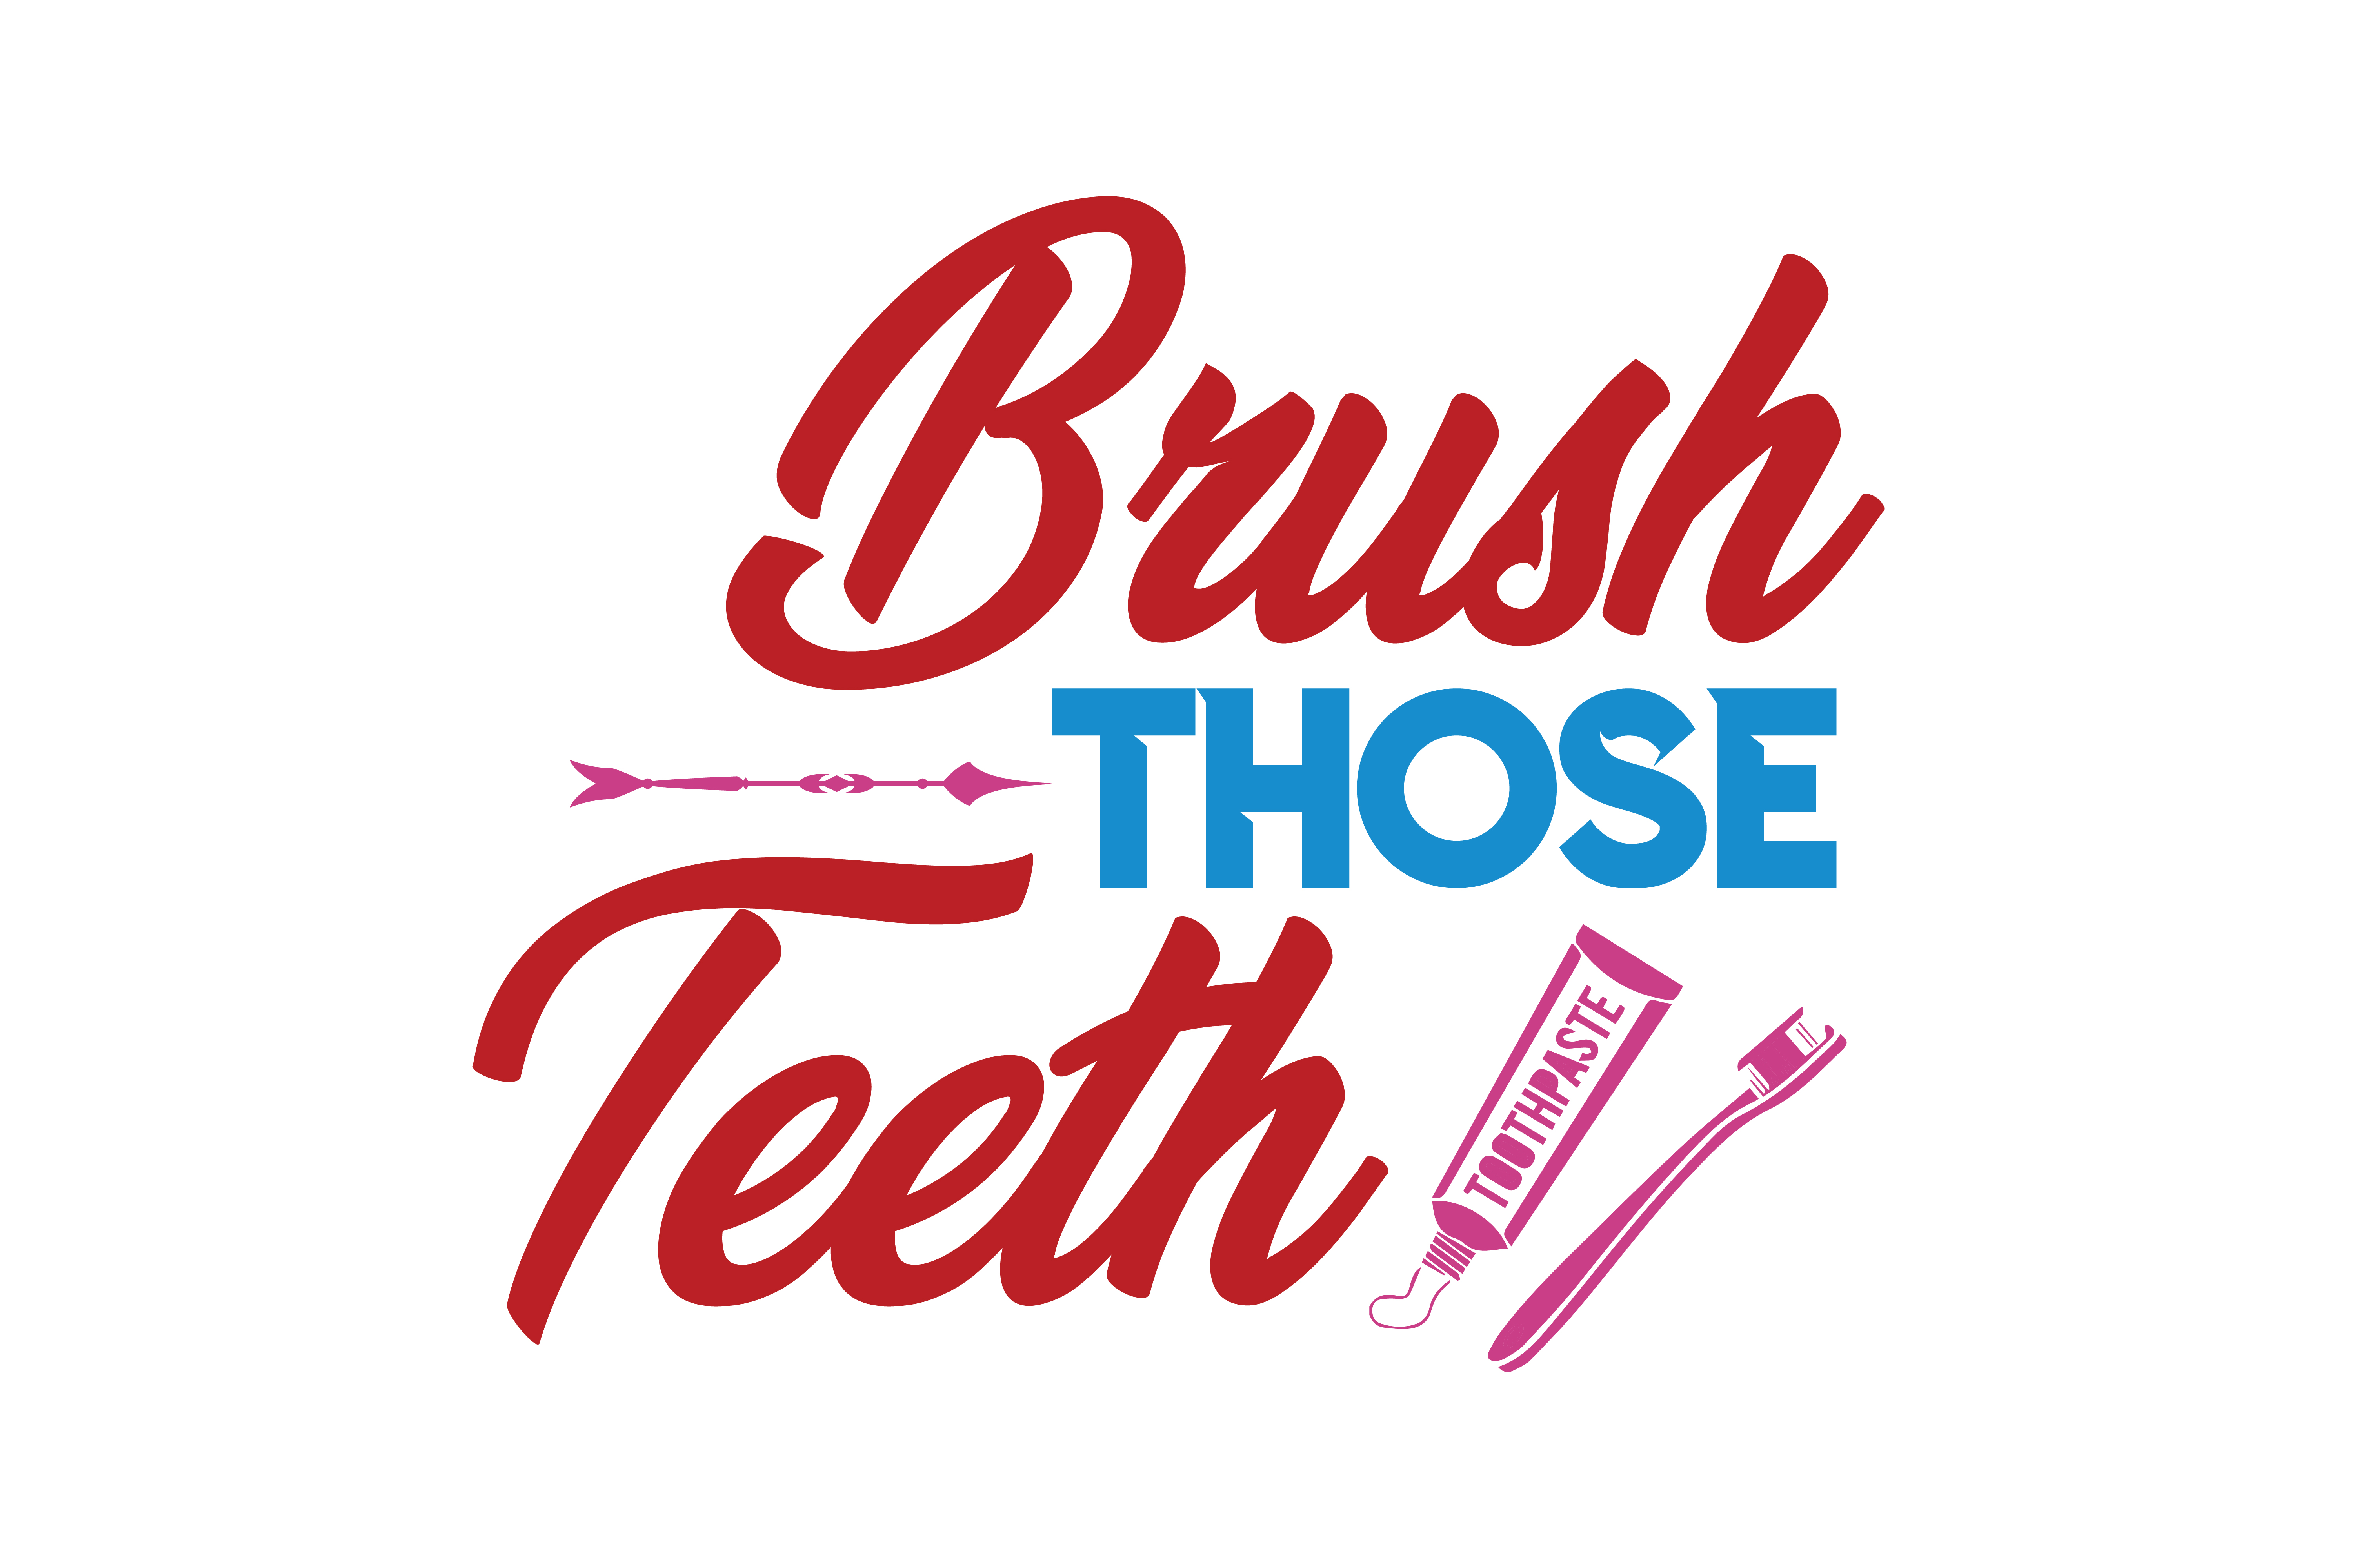 Download Free Brush Those Teeth Quote Svg Cut Graphic By Thelucky Creative for Cricut Explore, Silhouette and other cutting machines.